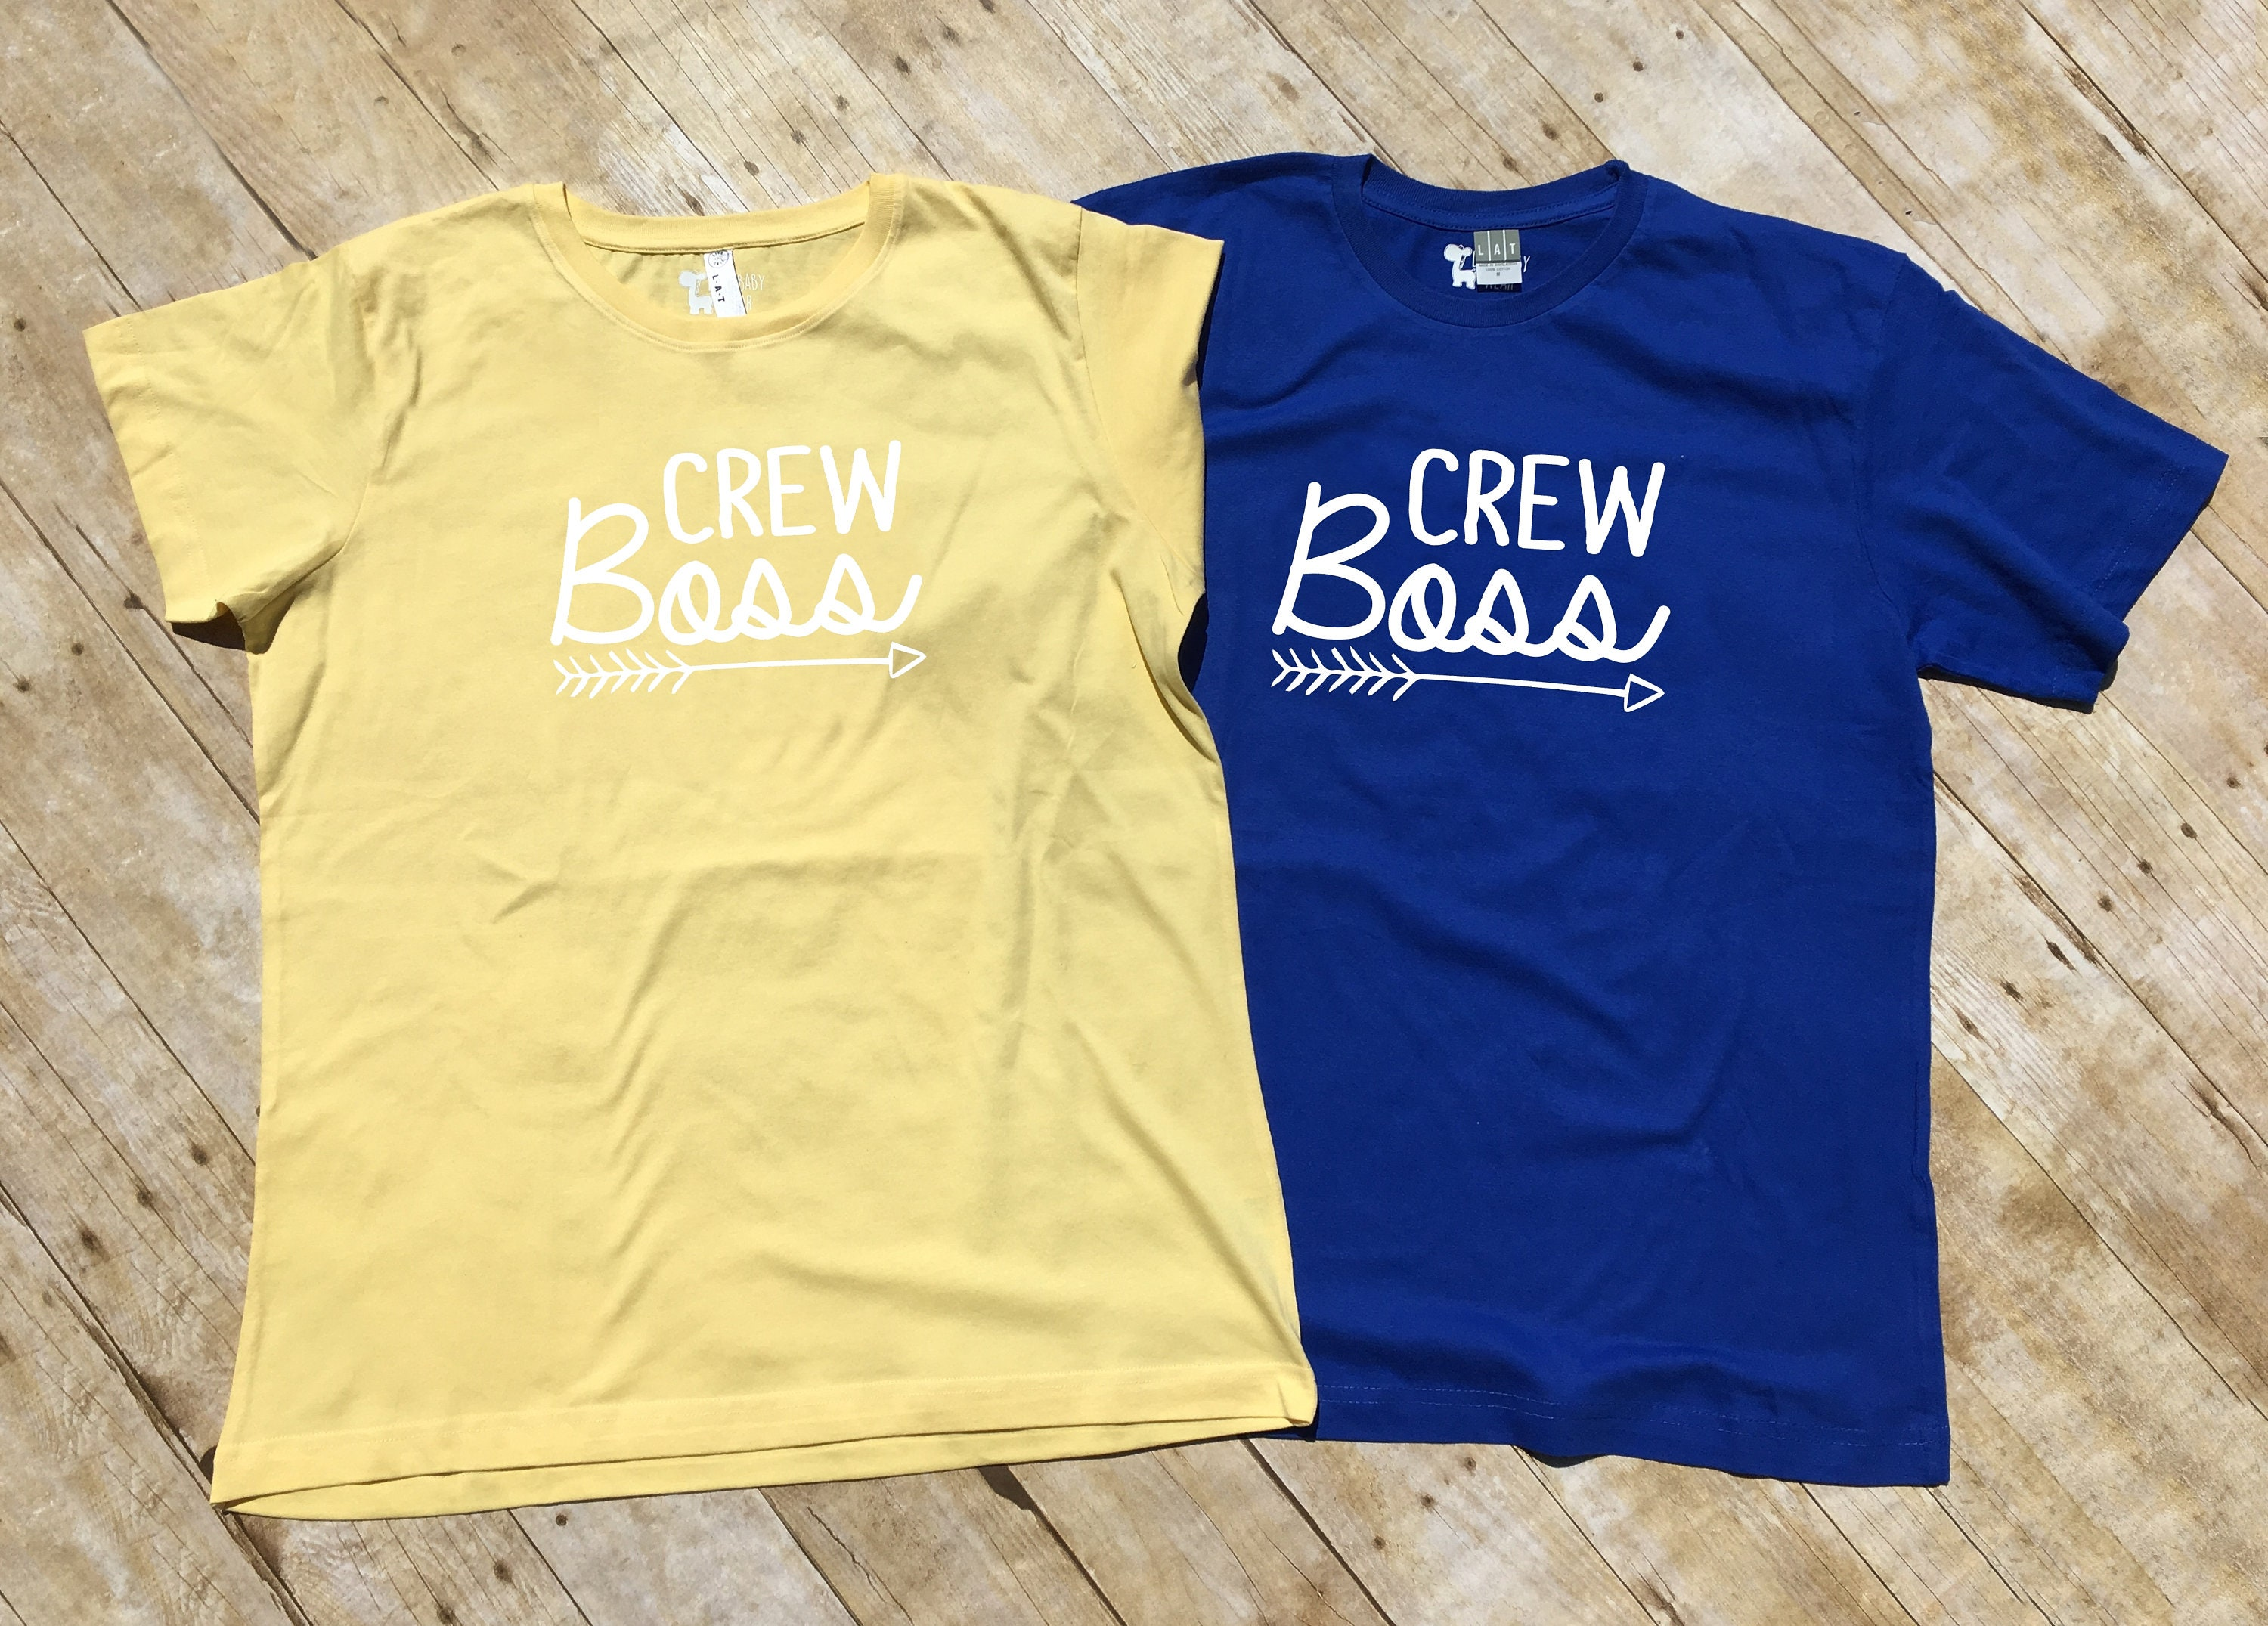 8941adfcbed Crew Boss Shirt. Cousin Crew shirts. NAMES   NUMBERS is Extra ...